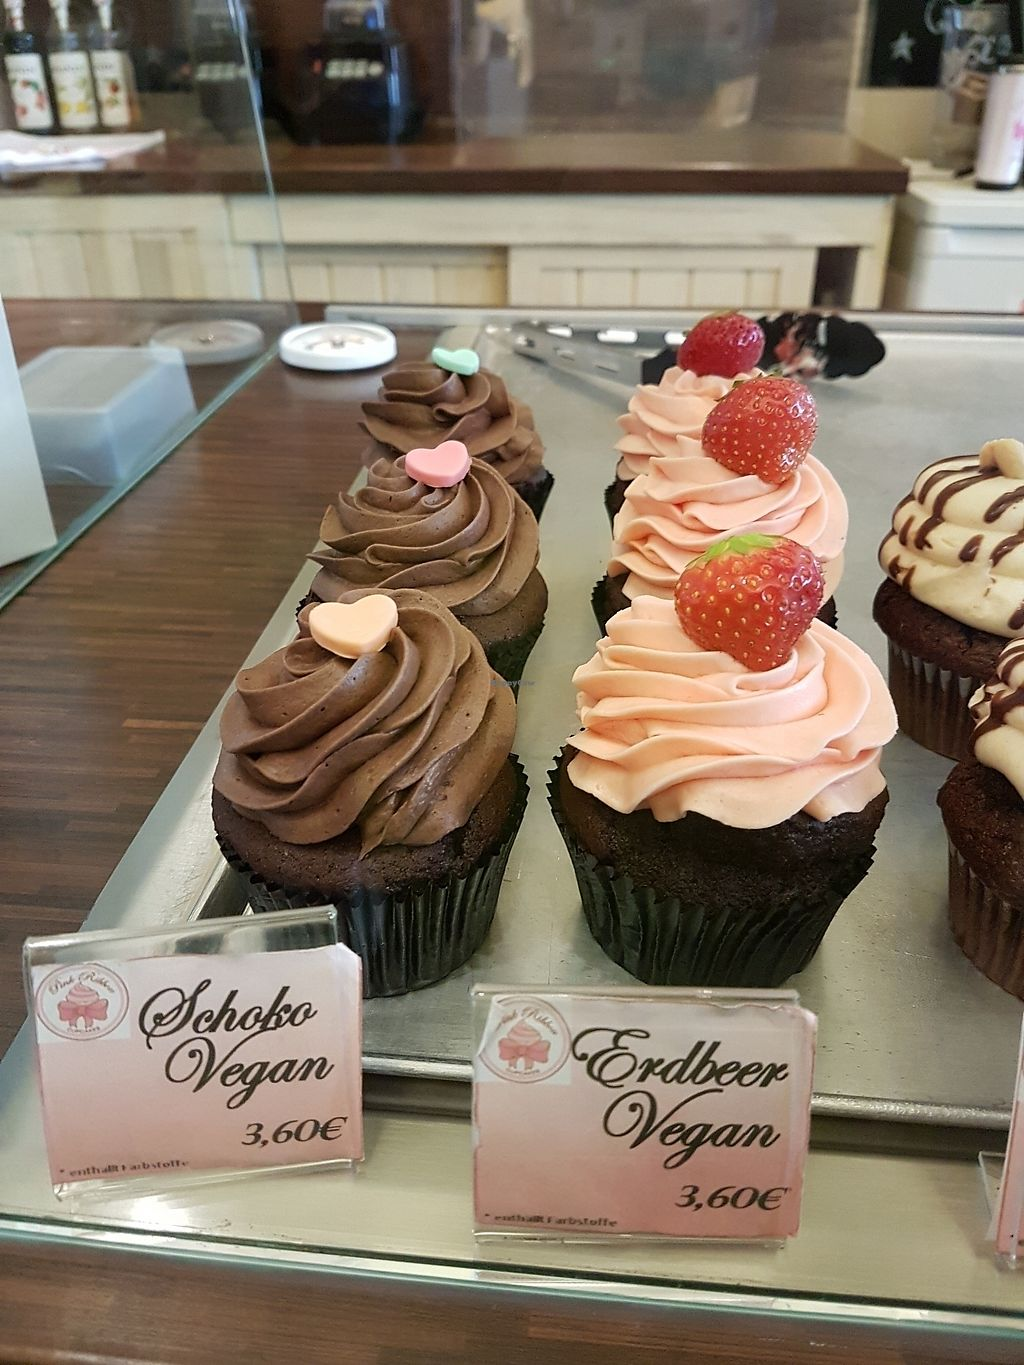 """Photo of Pink Ribbon Cupcakes  by <a href=""""/members/profile/emjace"""">emjace</a> <br/>yum! <br/> July 10, 2017  - <a href='/contact/abuse/image/84605/278678'>Report</a>"""